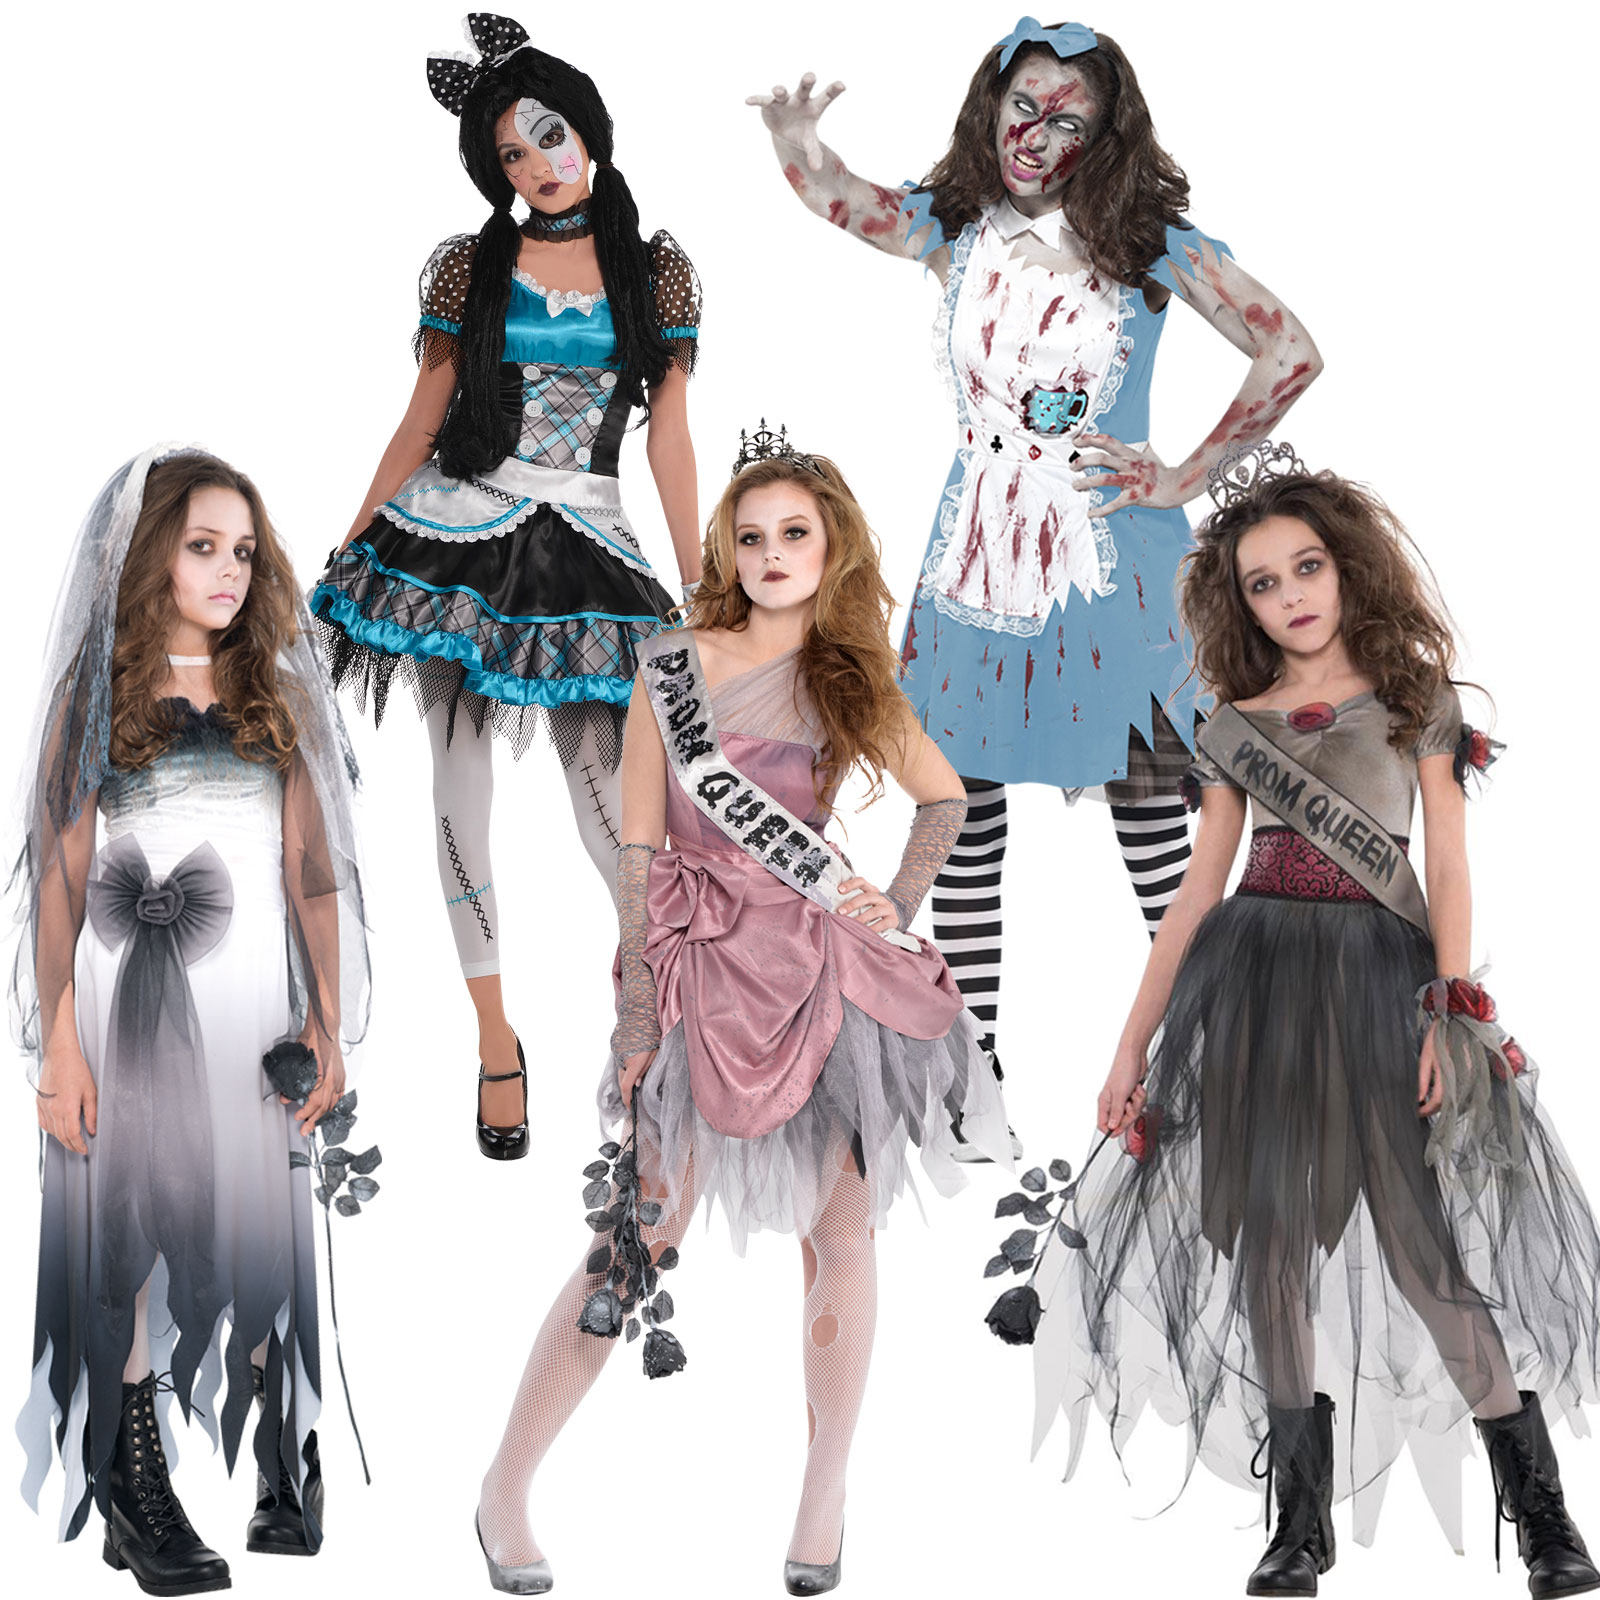 Dead Bride Halloween Costume.Details About Girls Teens Halloween Costumes Zombie Bride Doll Prom Queen Alice Fancy Dress